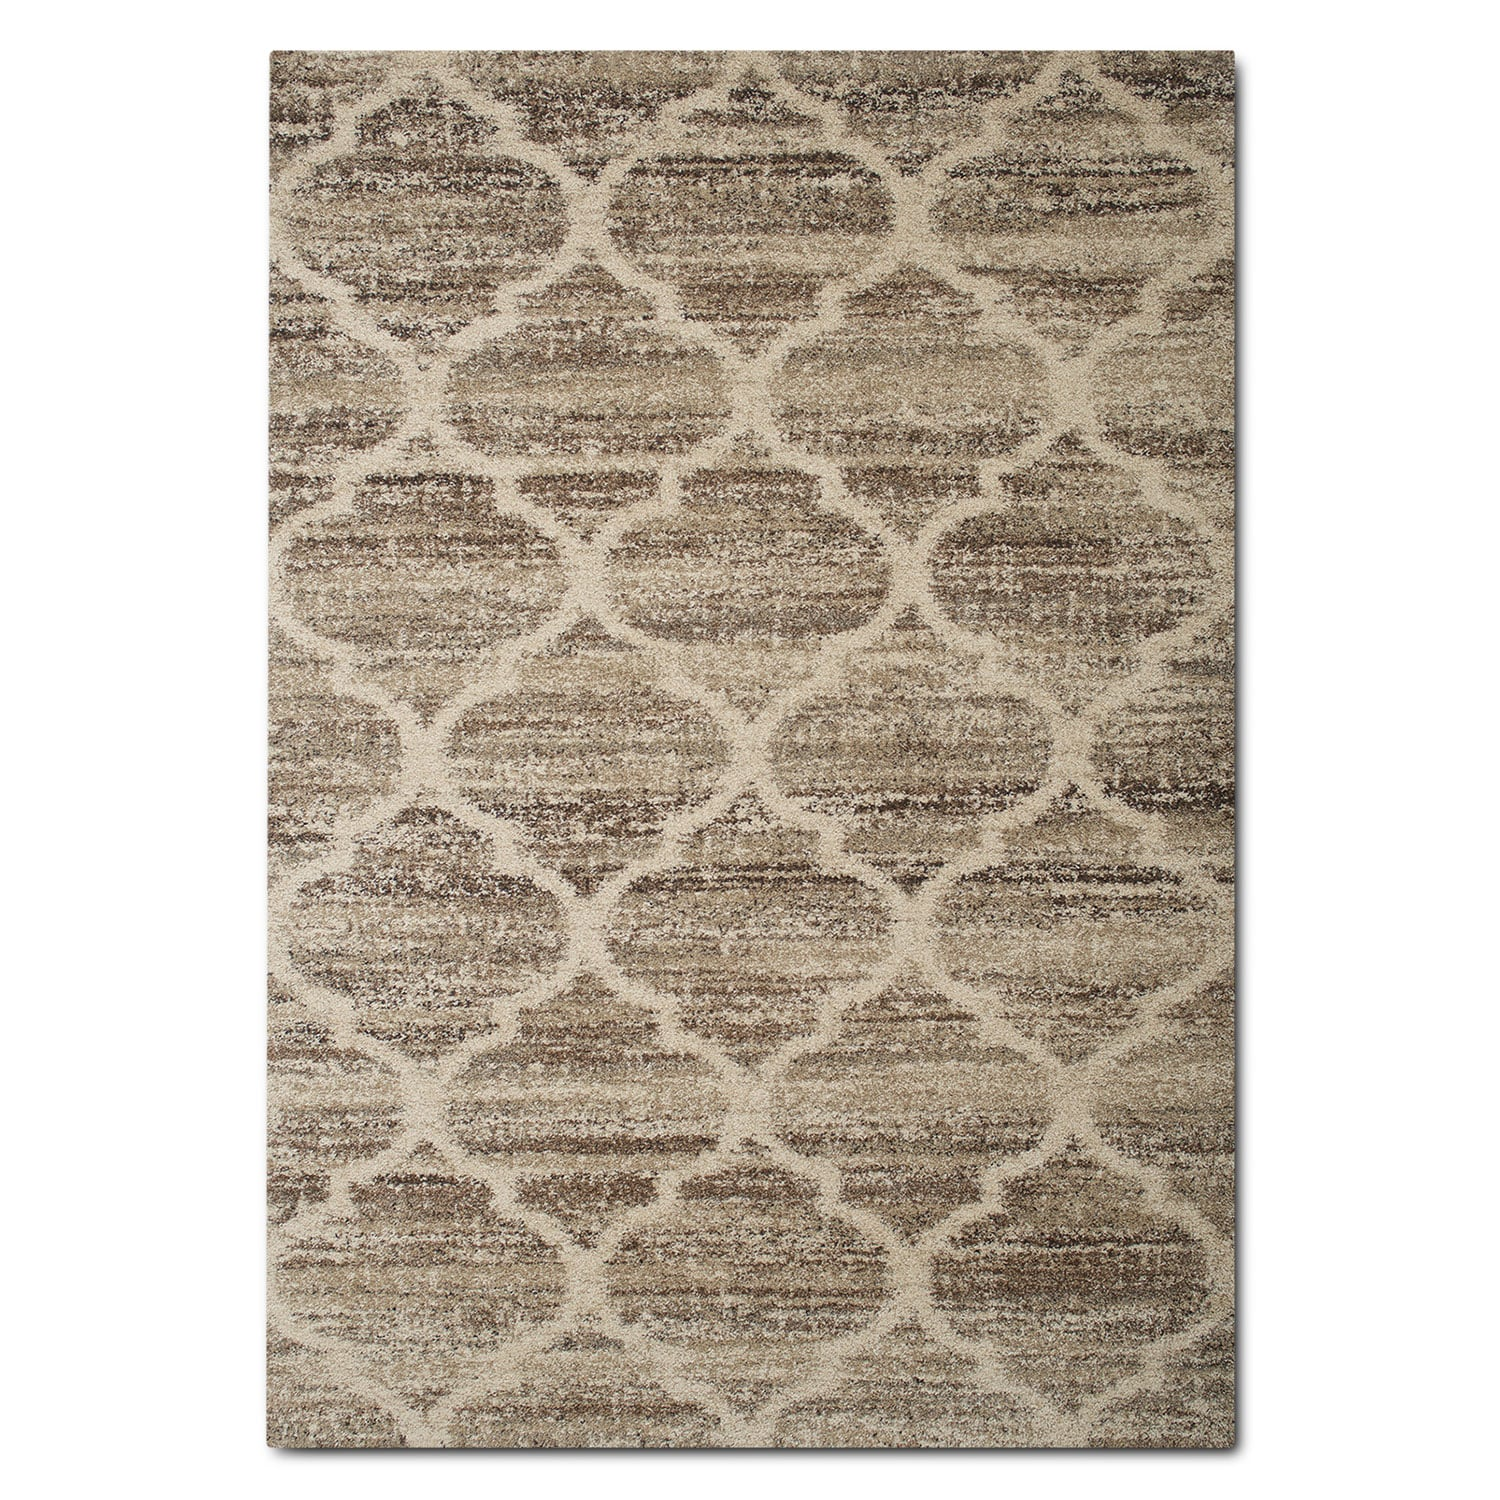 Rugs - Granada Area Rug - Tan and Brown